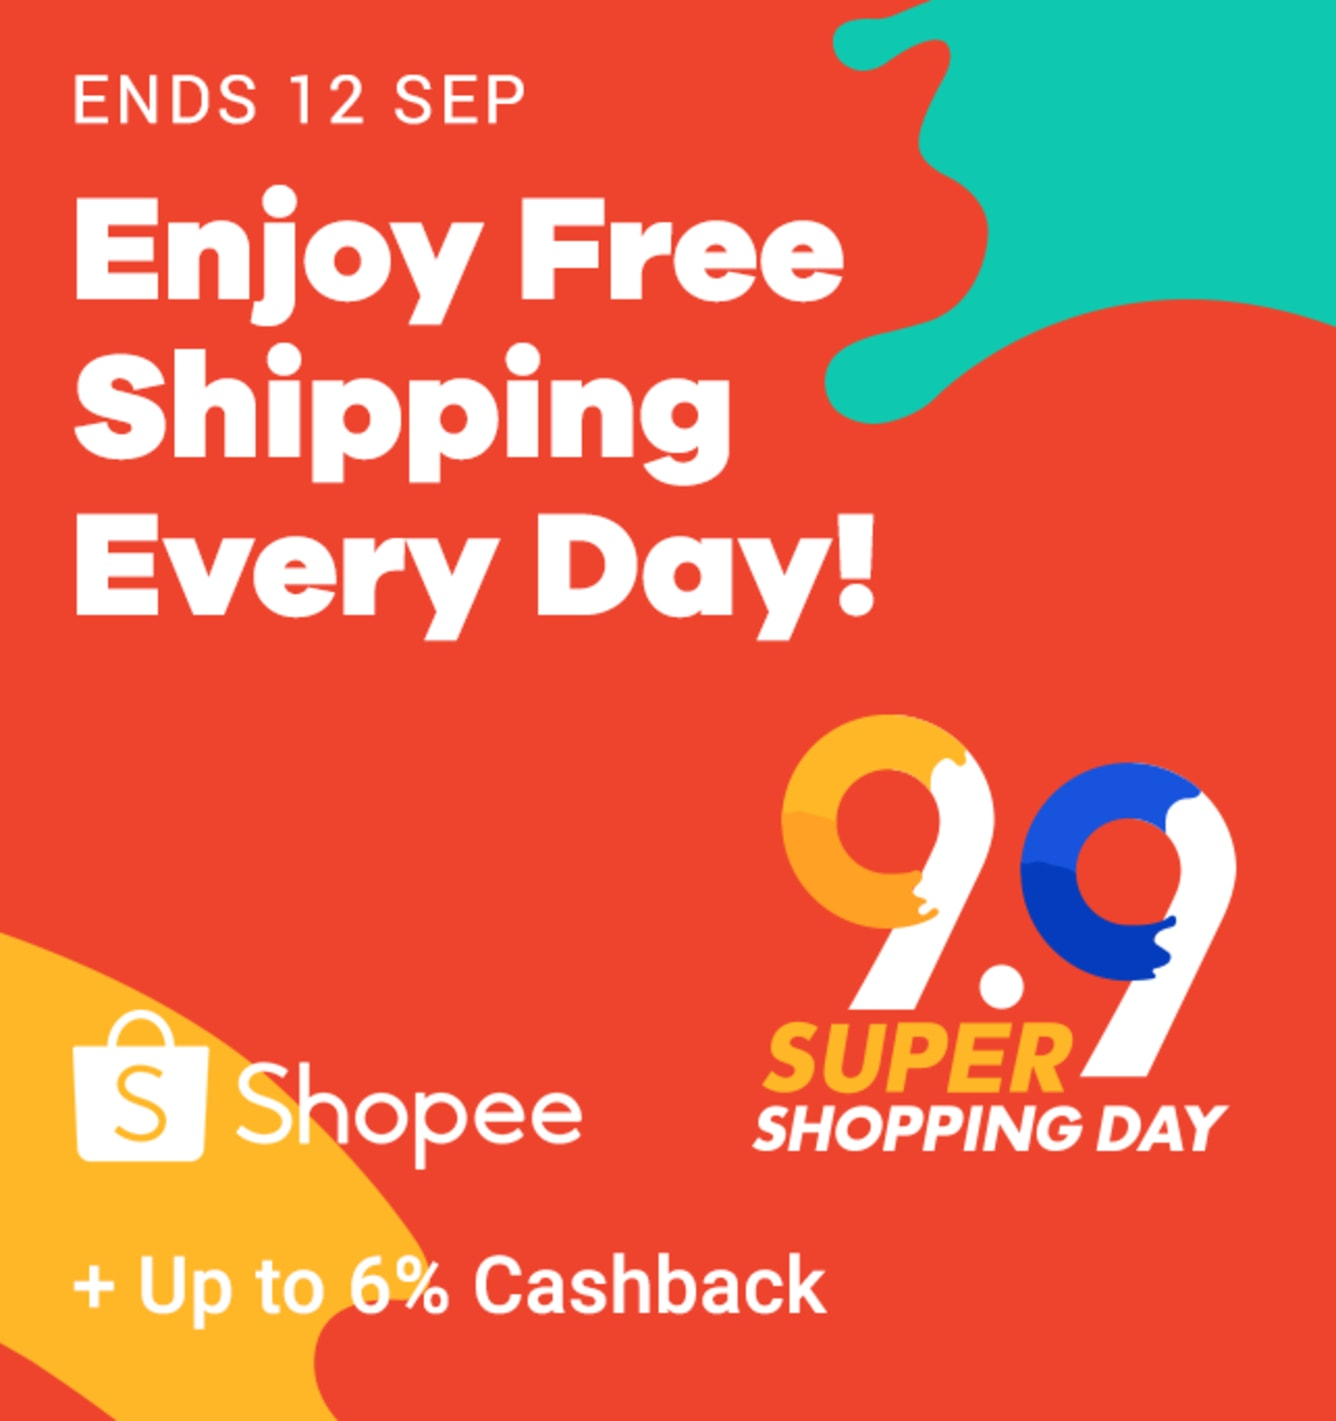 Shopee 9.9 Super Shopping Day + Up to 6% Cashback